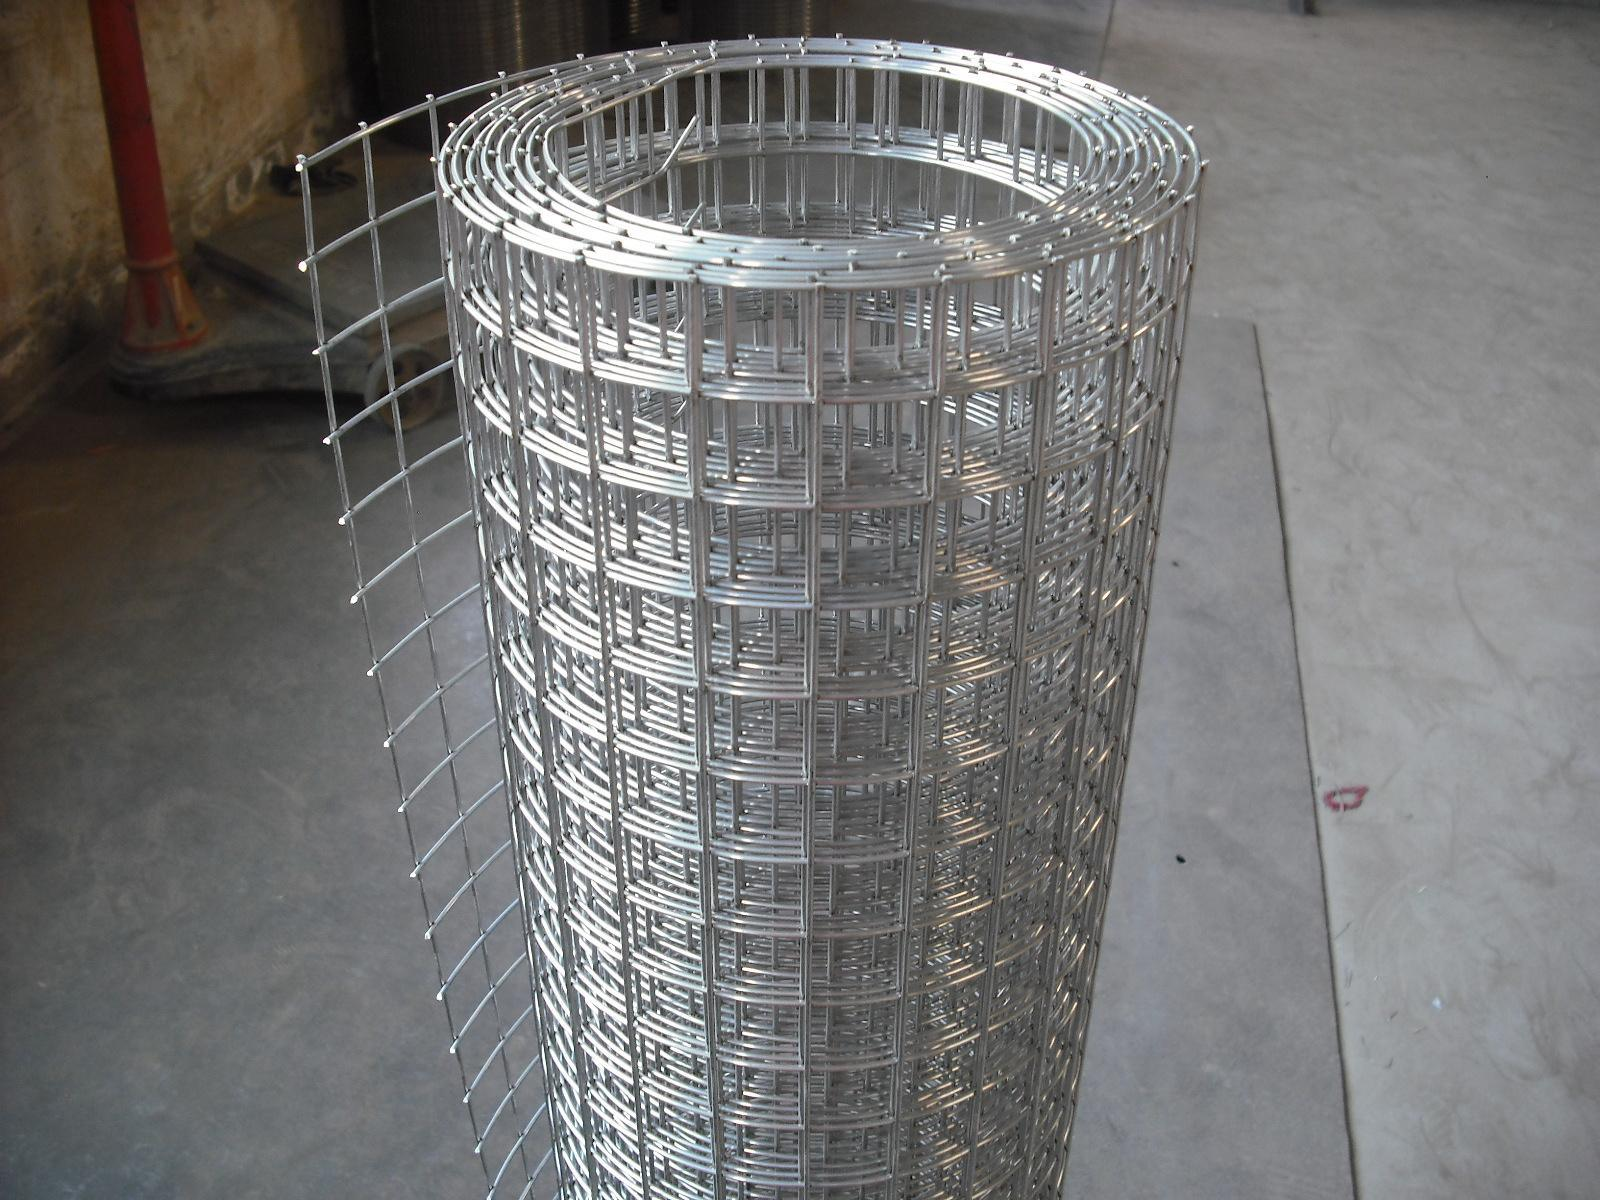 China Stainless Steel Welded Wire Mesh/ Welded Sheet/ Plate - China ...